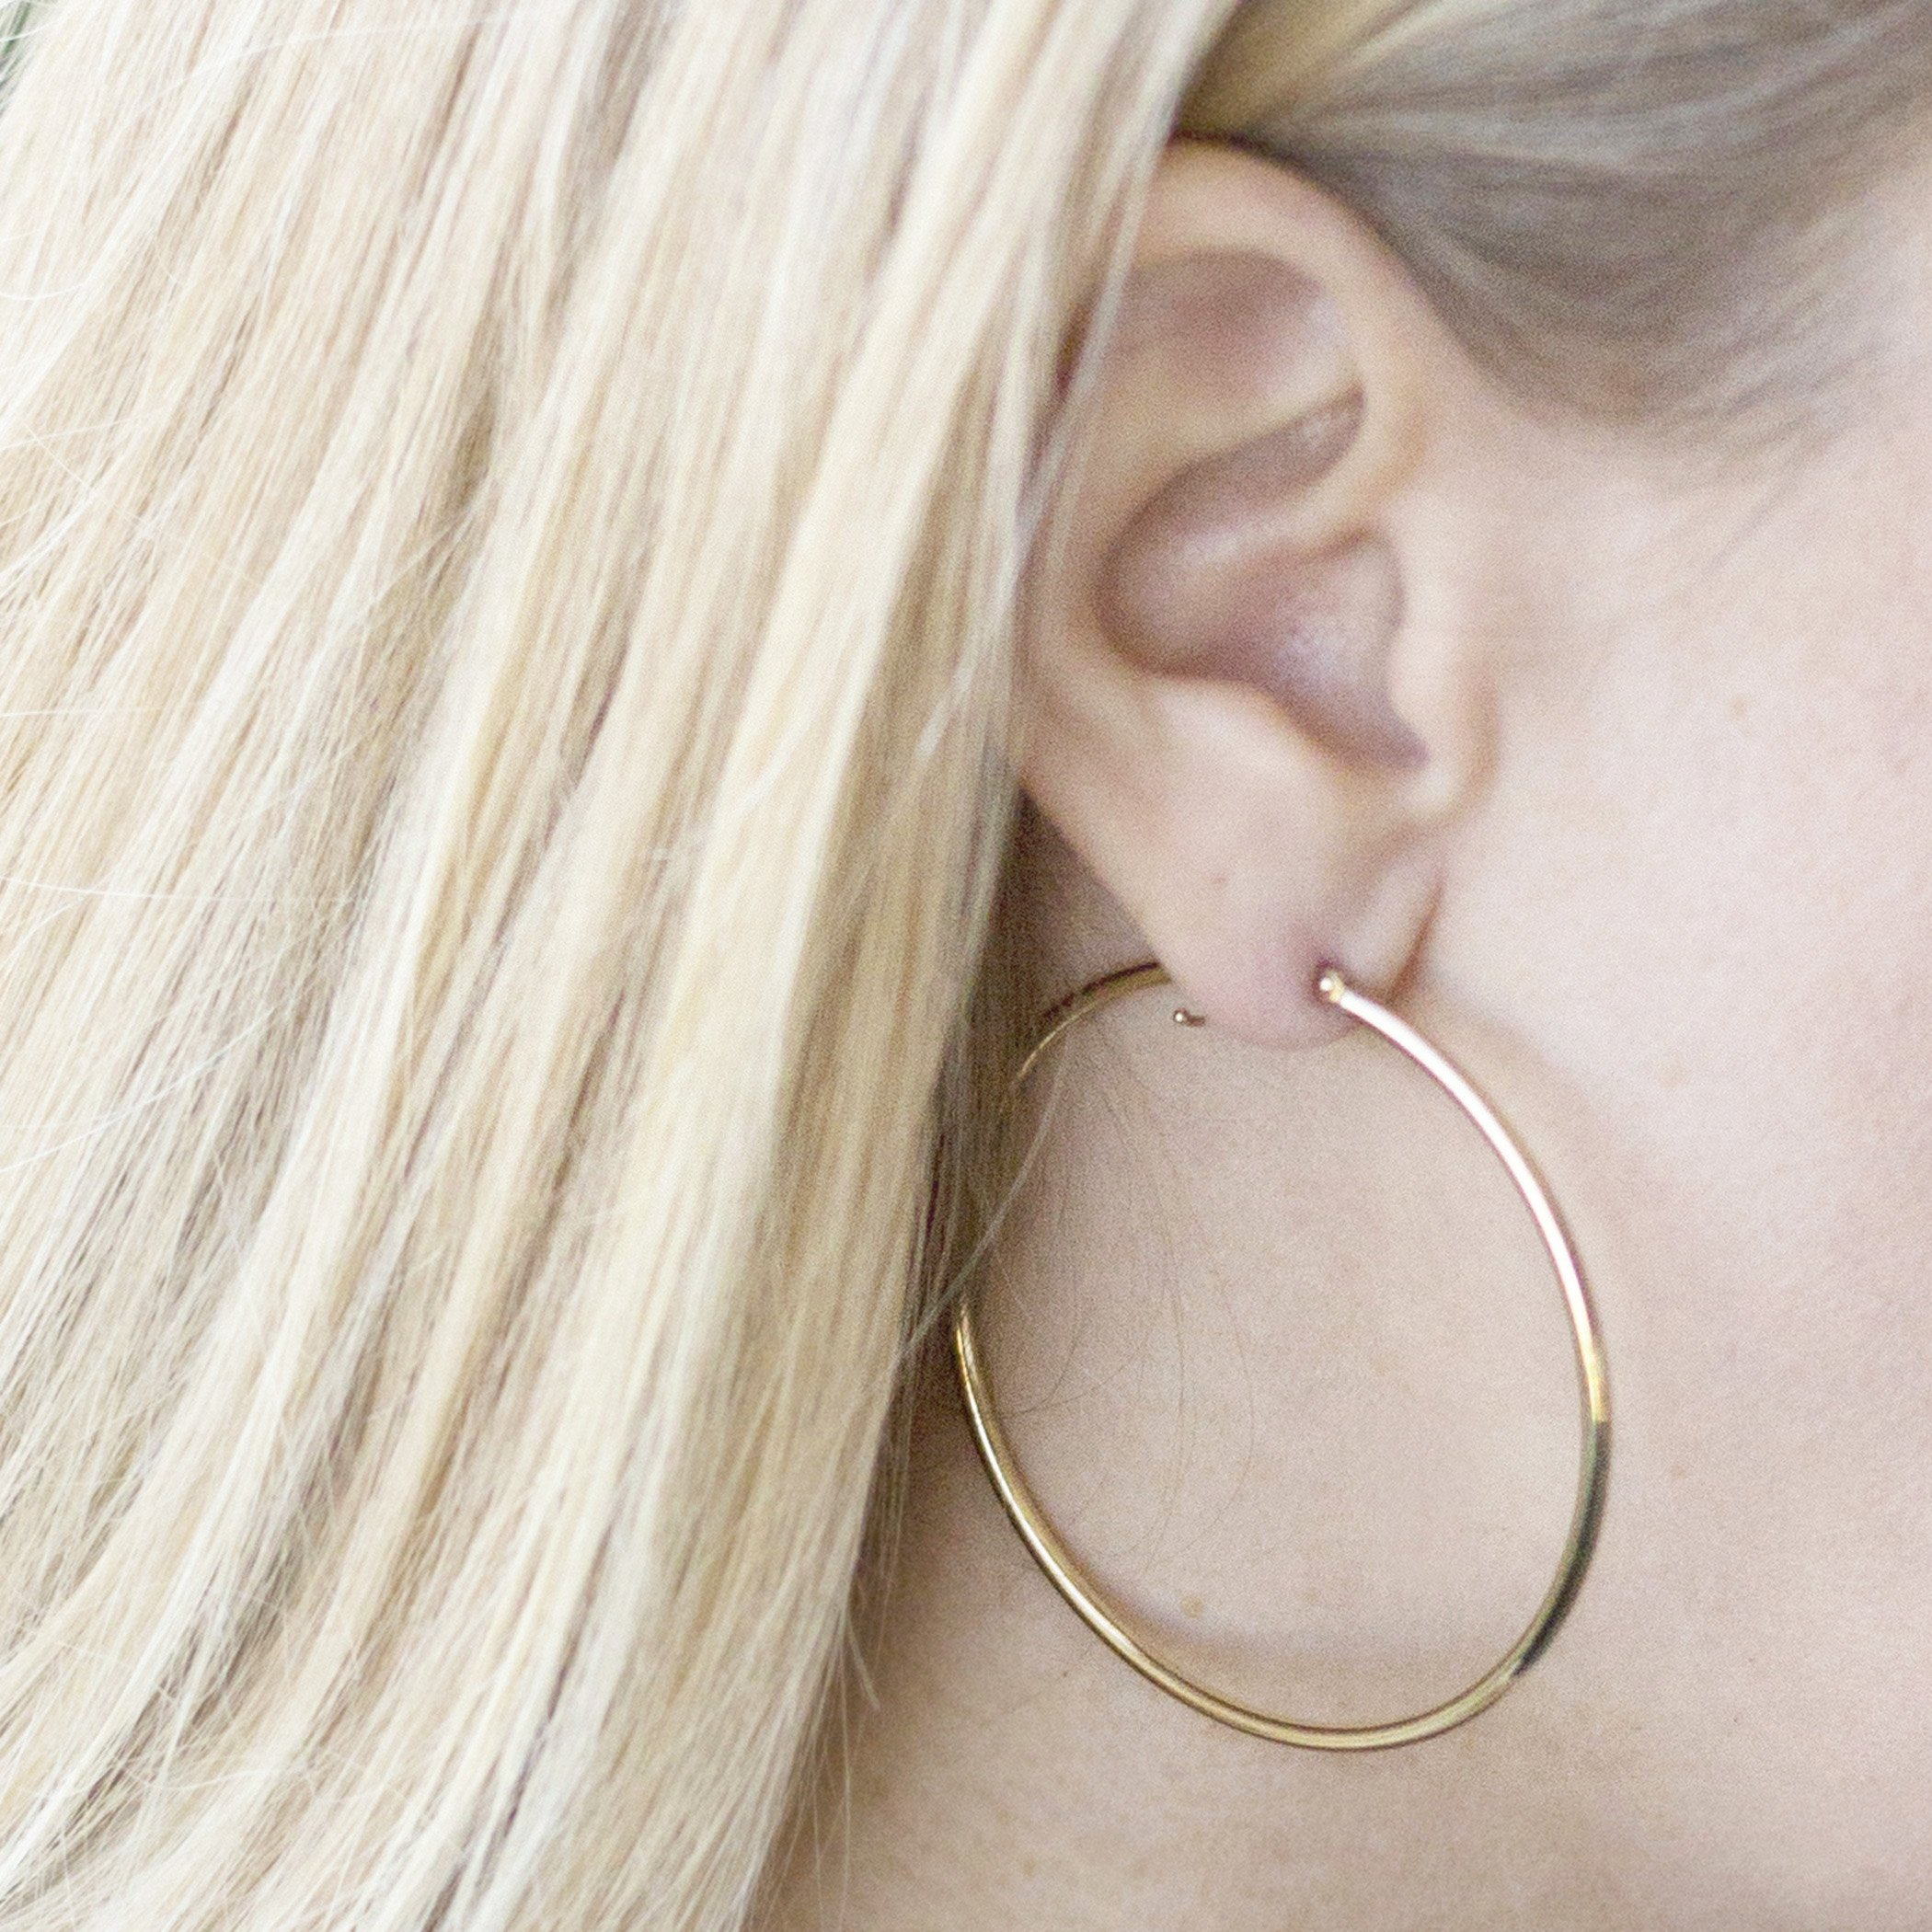 14K Yellow Gold 2 inch Hoop Earrings with Click Top Backing by Temecula Gold and Jewelry (Image #4)